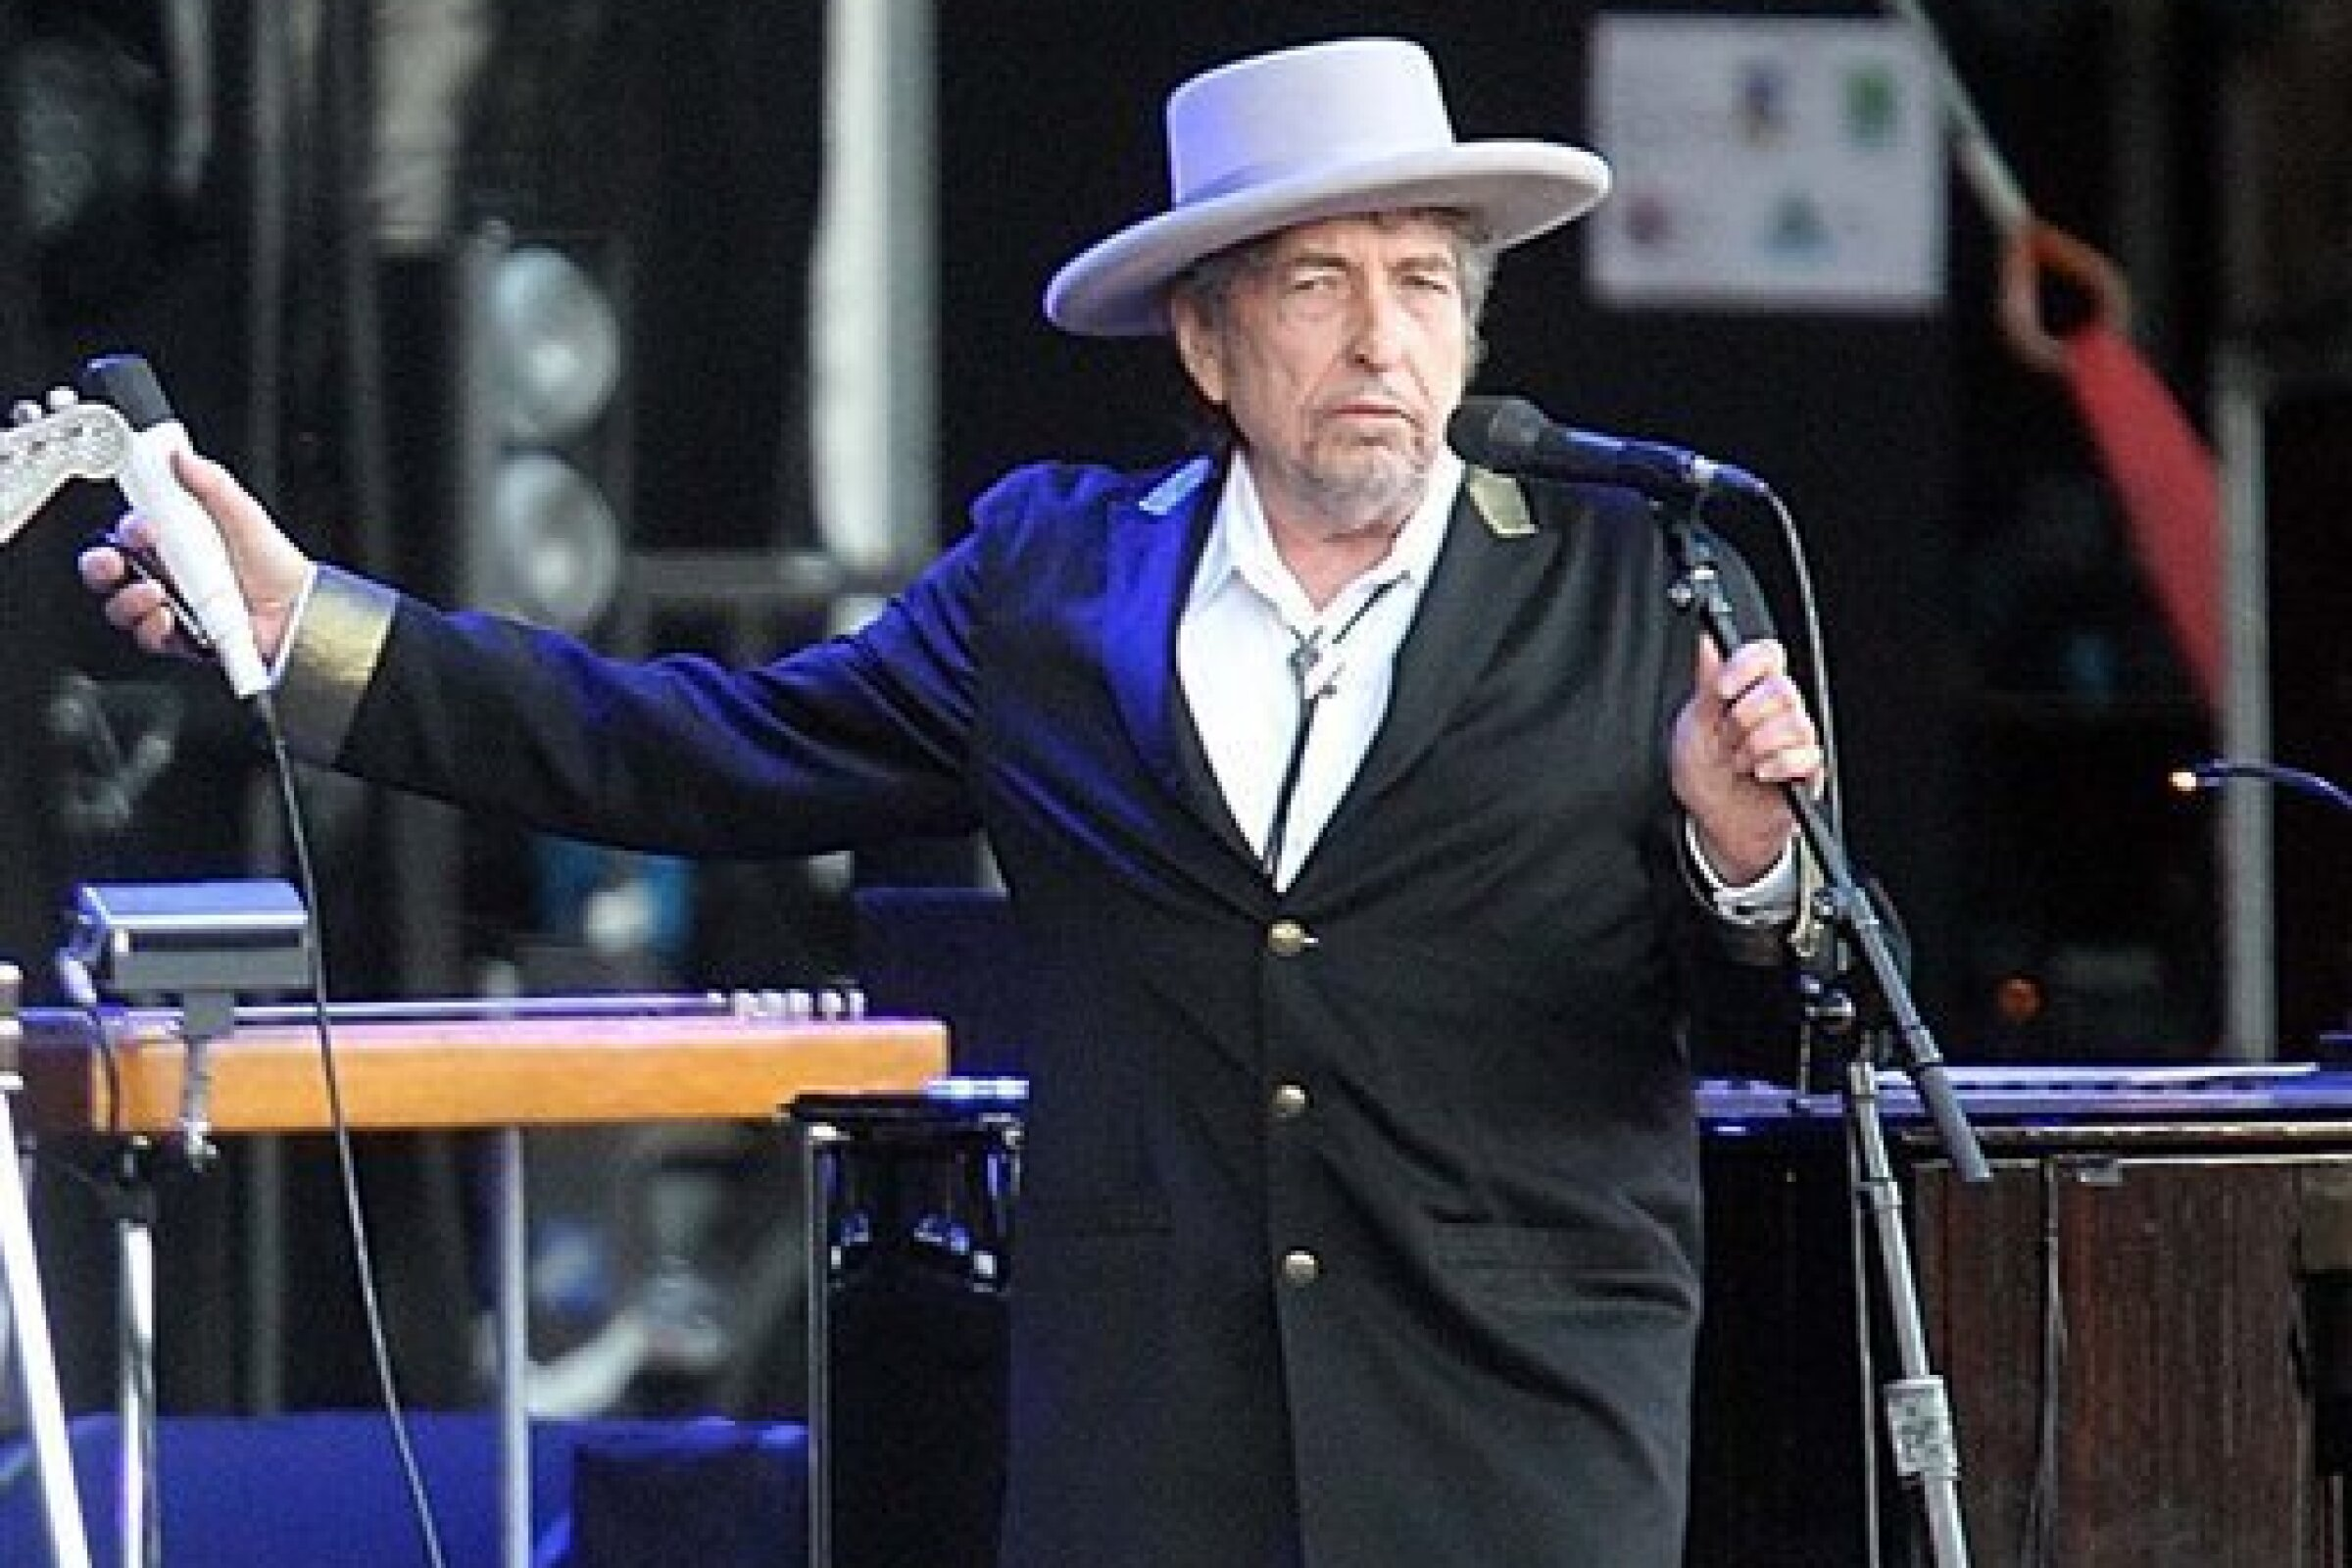 Bob Dylan is set to perform June 17 at Pechanga Arena, a venue he performed at a number of times when it was known as the San Diego Sports Arena.